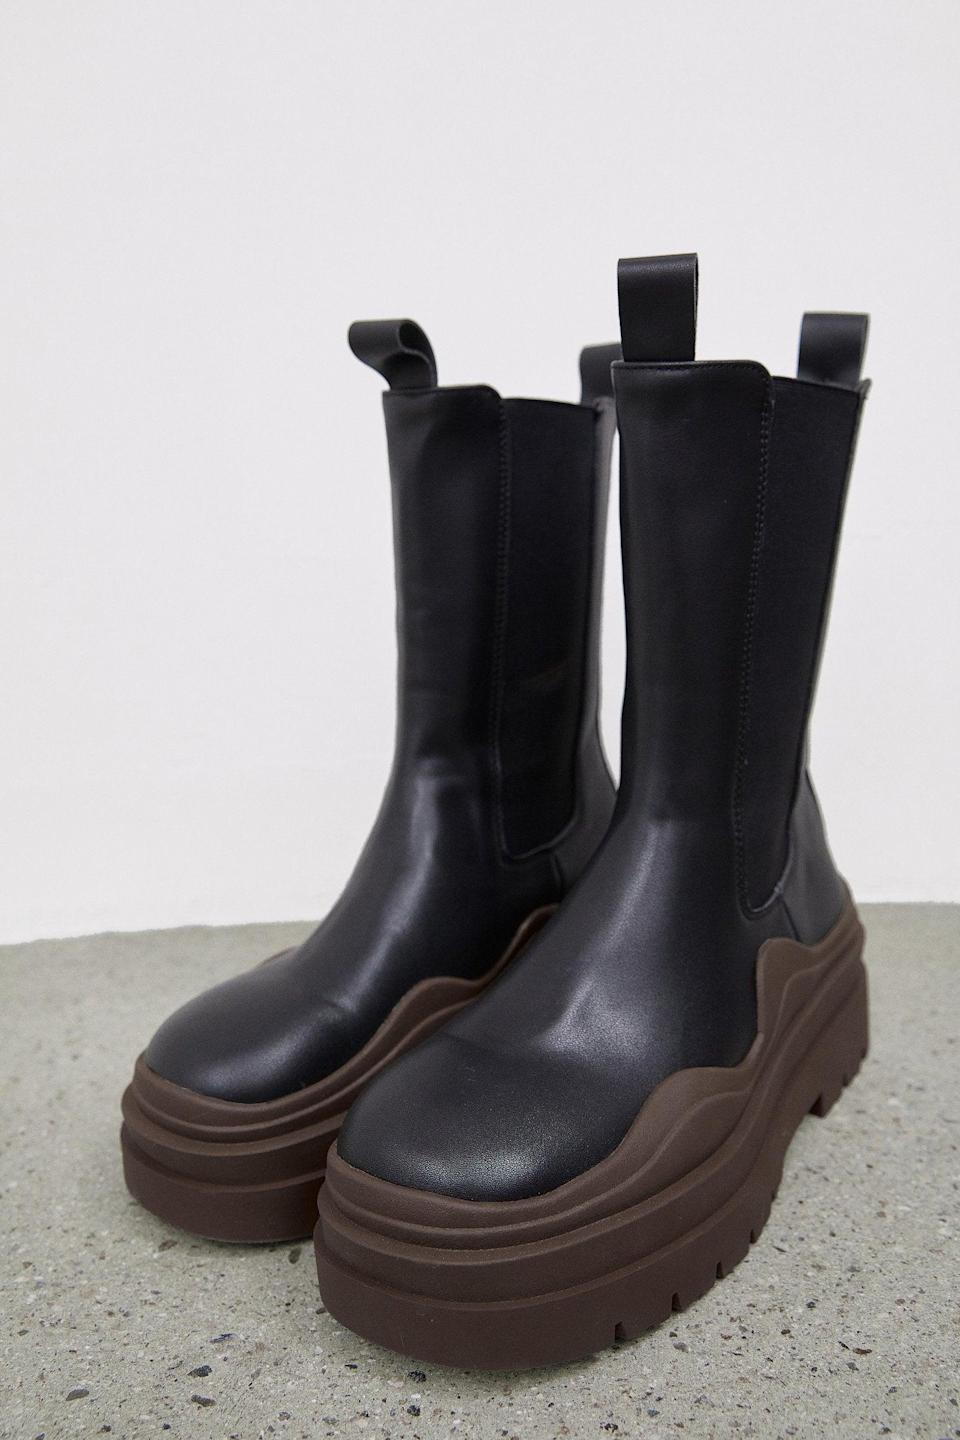 "<br><br><strong>The Source Unknown</strong> High Platform Ankle Boots, Brown & Black, $, available at <a href=""https://go.skimresources.com/?id=30283X879131&url=https%3A%2F%2Fthesourceunknown.com%2Fcollections%2Fshoes-bags%2Fproducts%2Fhigh-platform-ankle-boots-brown-black"" rel=""nofollow noopener"" target=""_blank"" data-ylk=""slk:The Source Unknown"" class=""link rapid-noclick-resp"">The Source Unknown</a>"